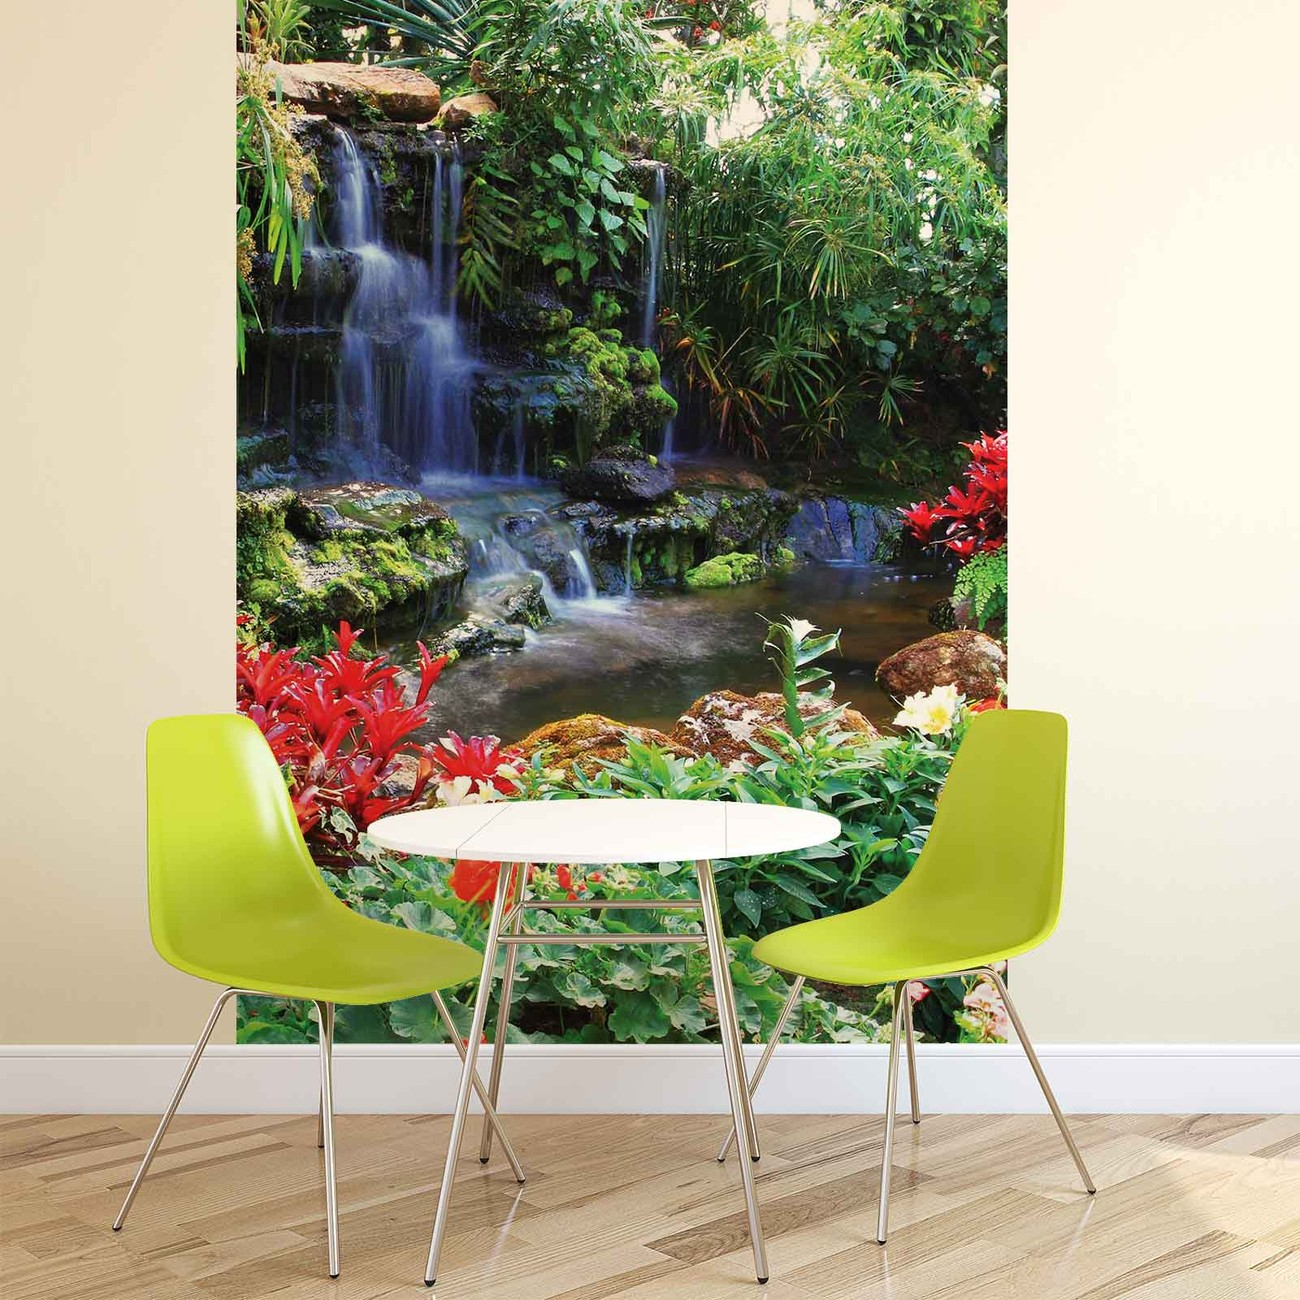 fototapete tapete wasserfall wald natur bei europosters kostenloser versand. Black Bedroom Furniture Sets. Home Design Ideas